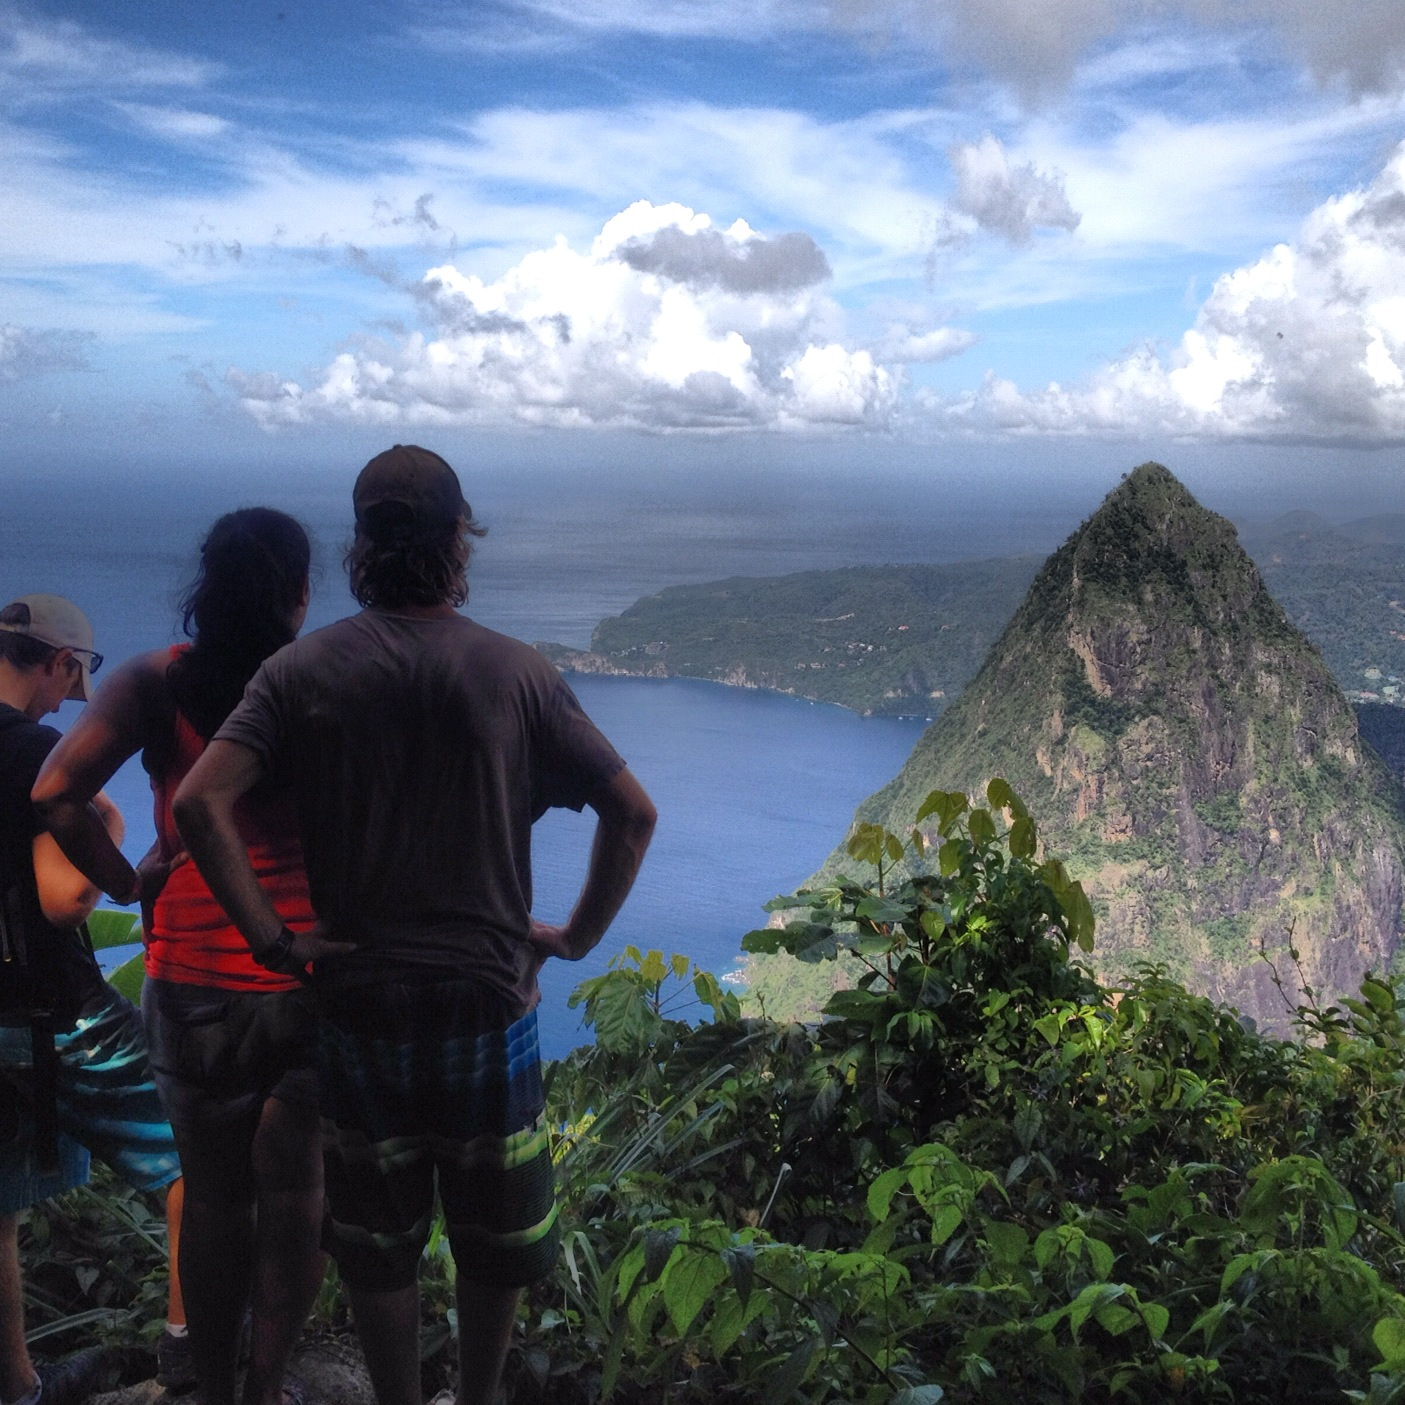 Taking in the view of Petit Piton and Soufrière from the top of Gros Piton, the highest point in St. Lucia. We were moored in the marine park below (center of this photo) for the first few days of my trip.